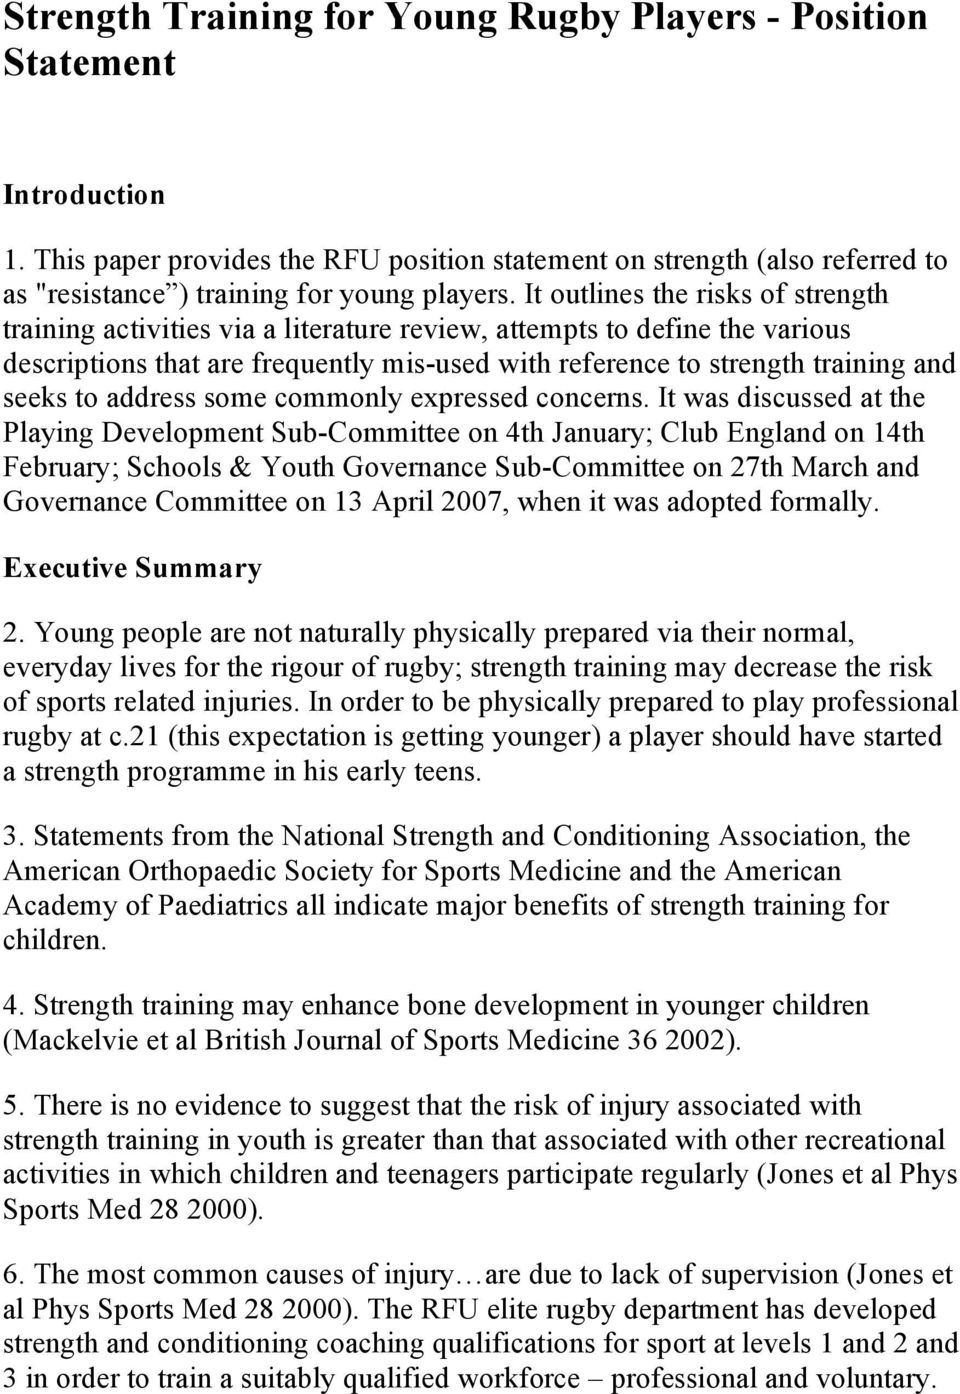 Strength Training for Young Rugby Players Position Statement